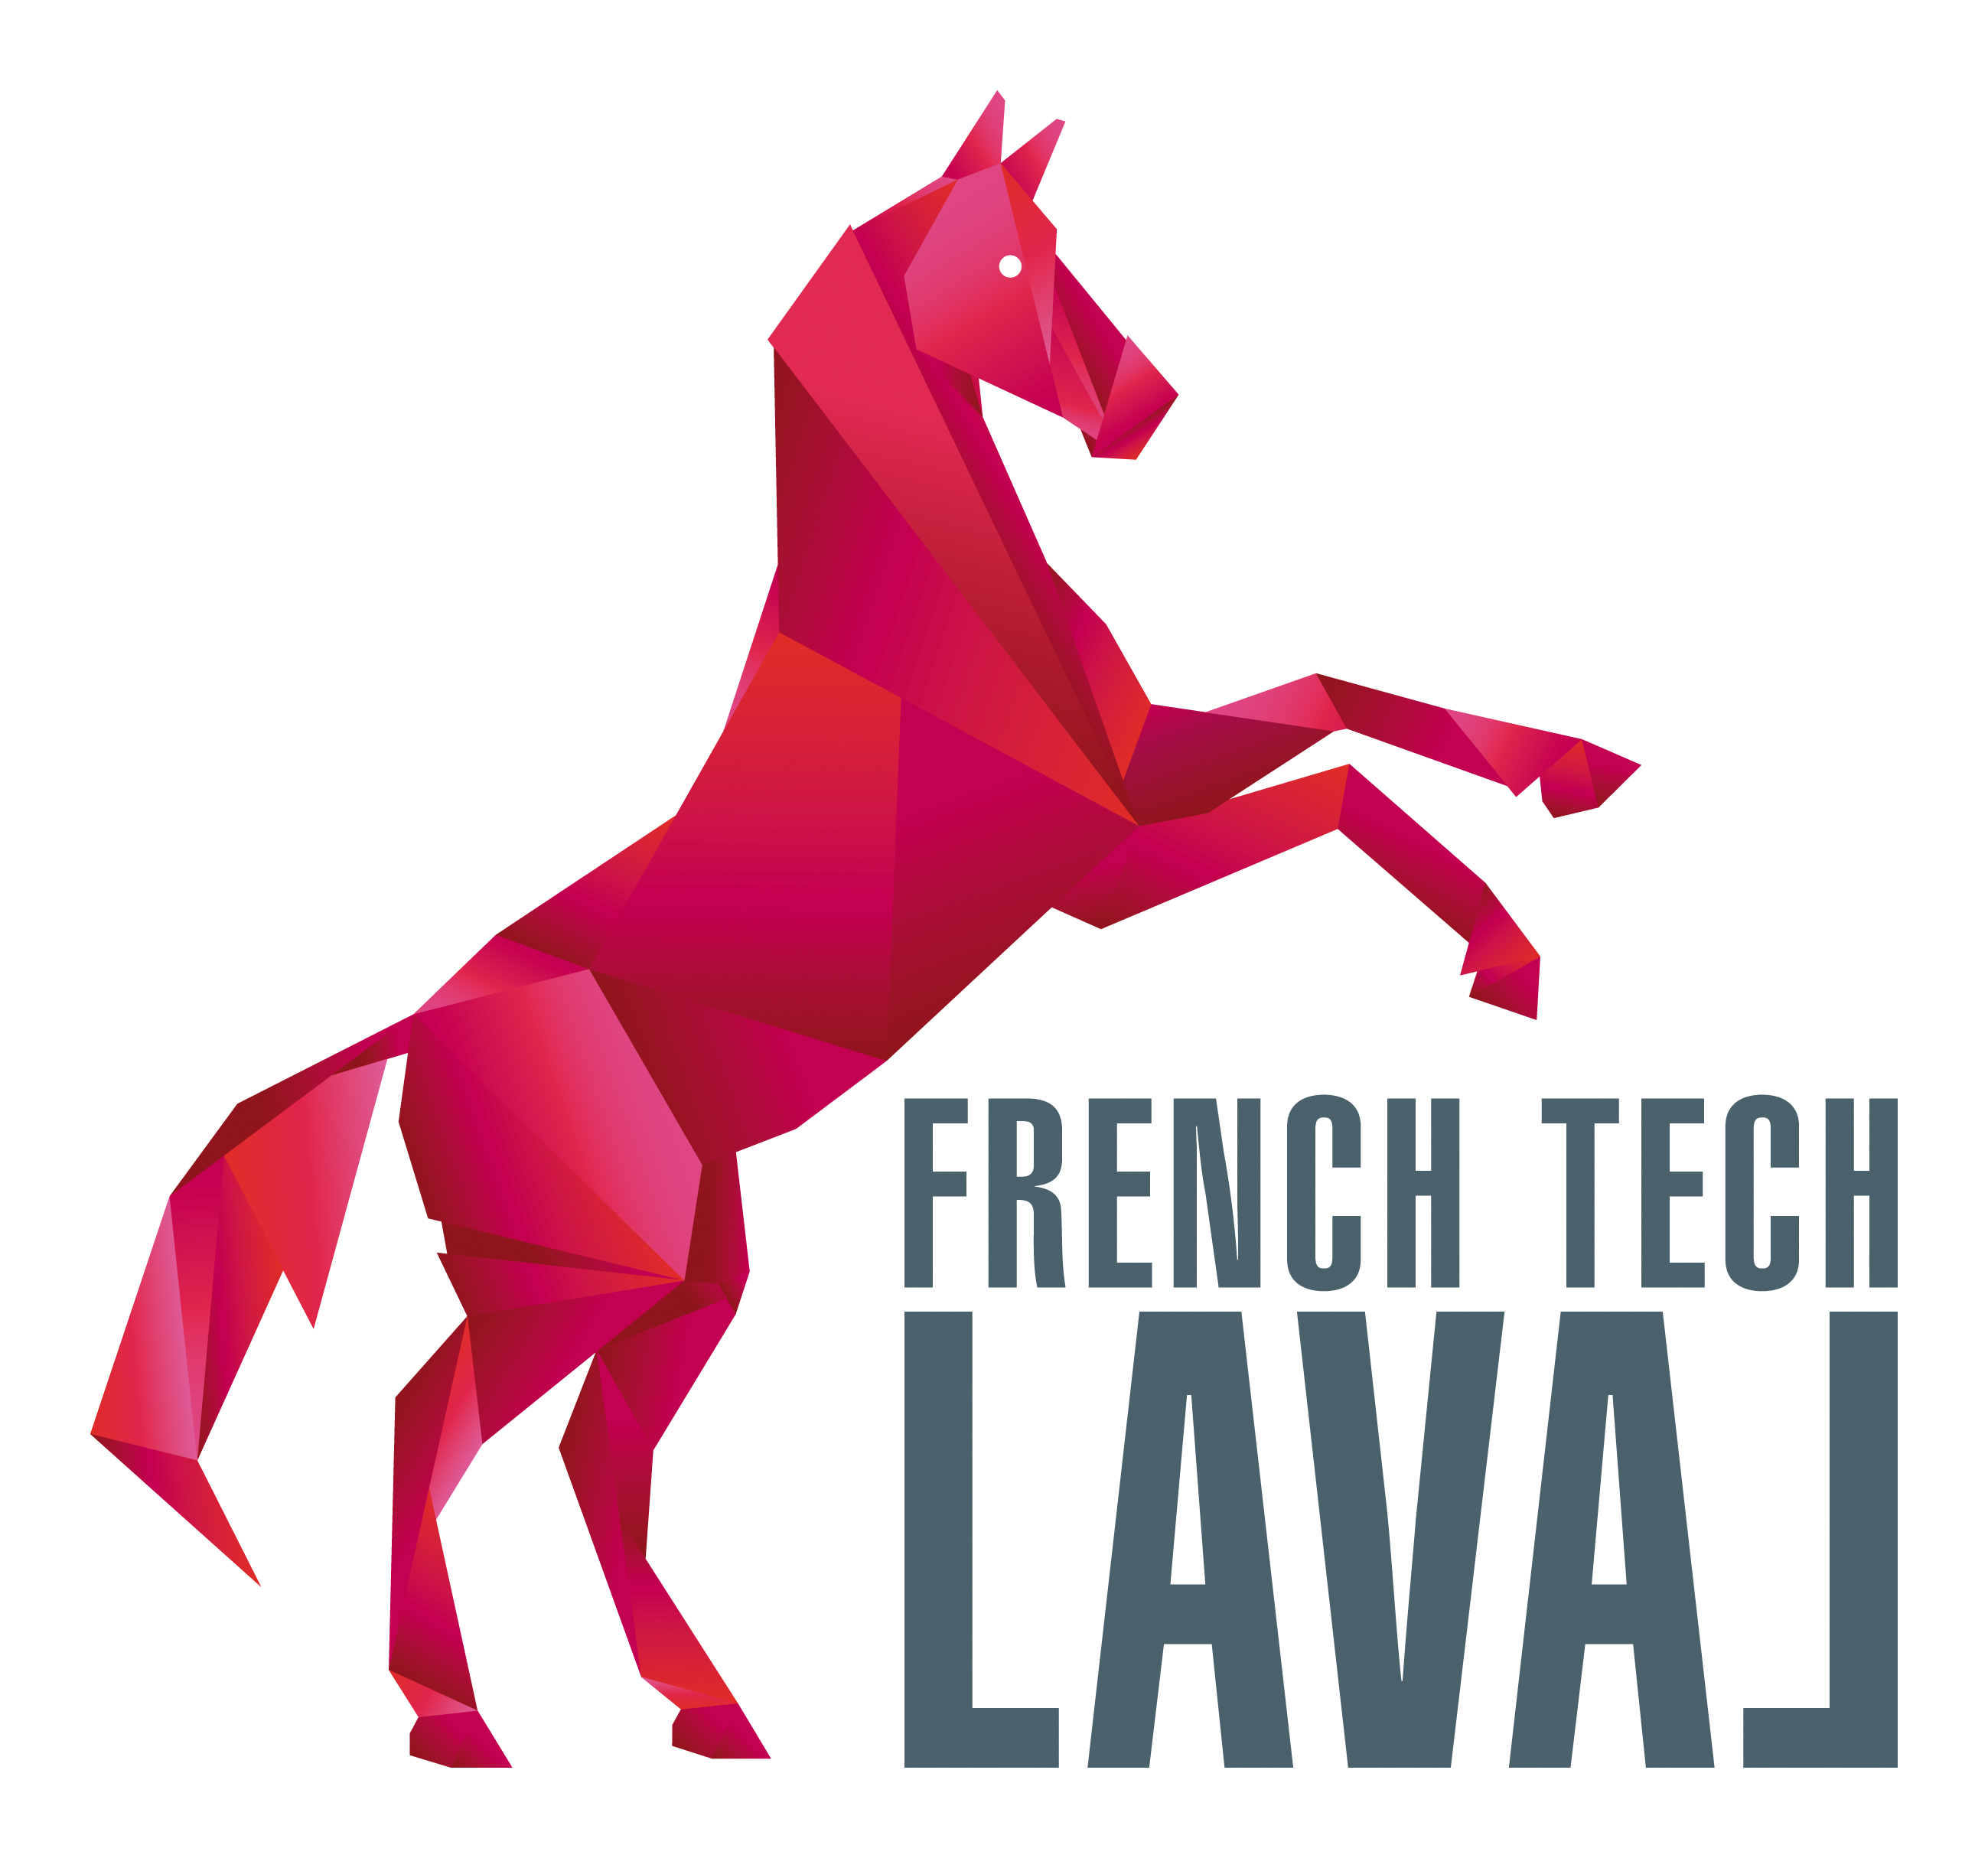 Logo-FrenchTech-Laval-Coul-RVB-HD